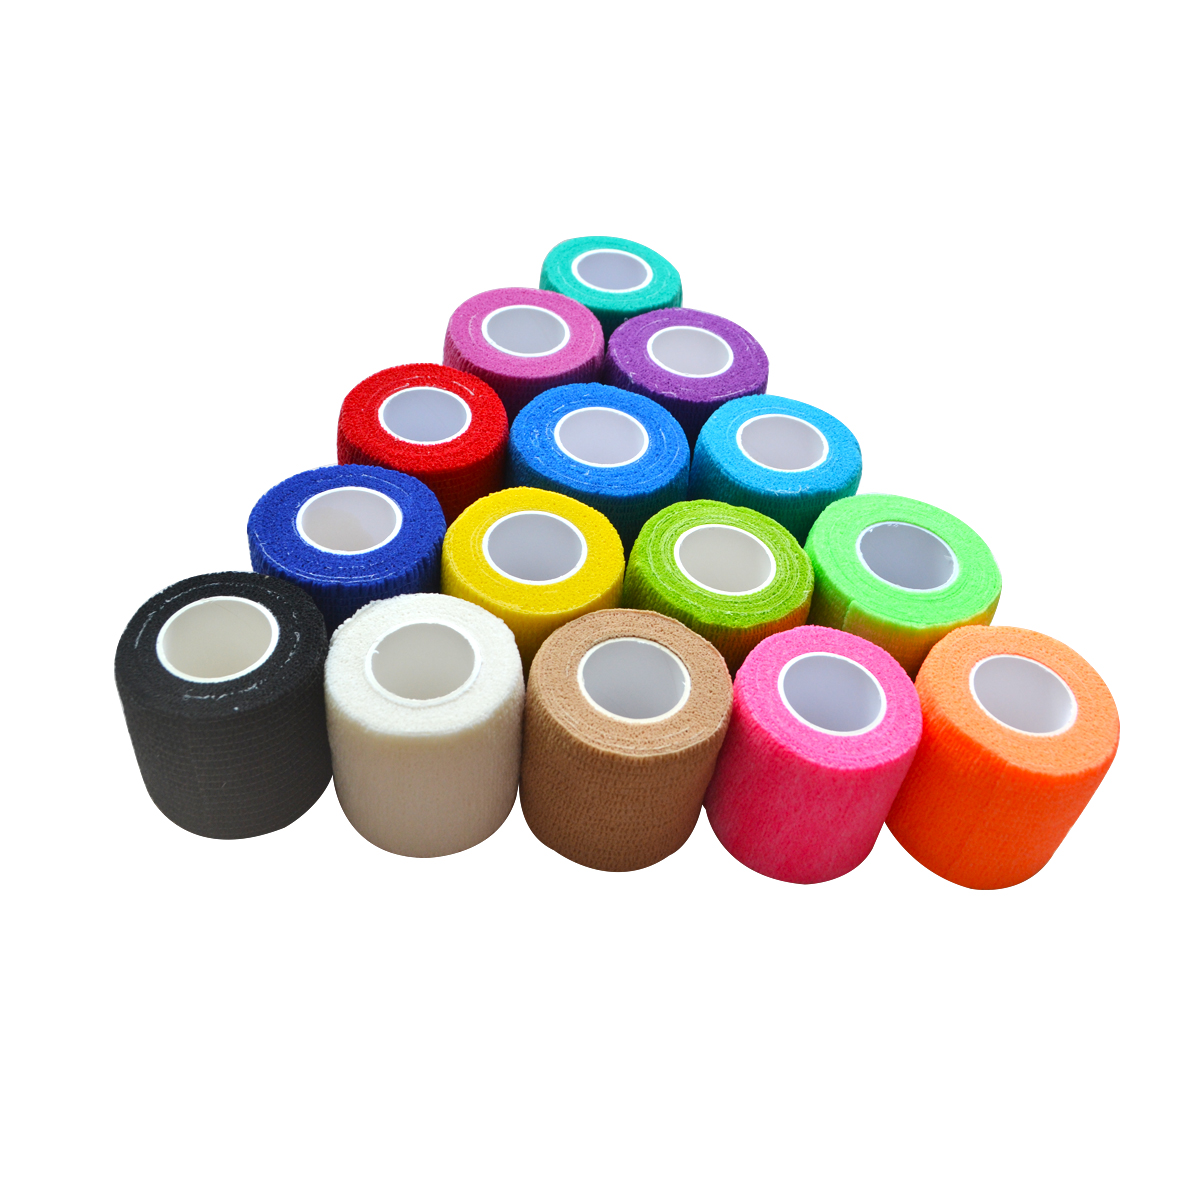 1pcs 5cm Self Adhesive Non Woven Elastic Cohesive Bandage Wrap Tape High Quality Sports Protection Nail Polish Remover Colorful